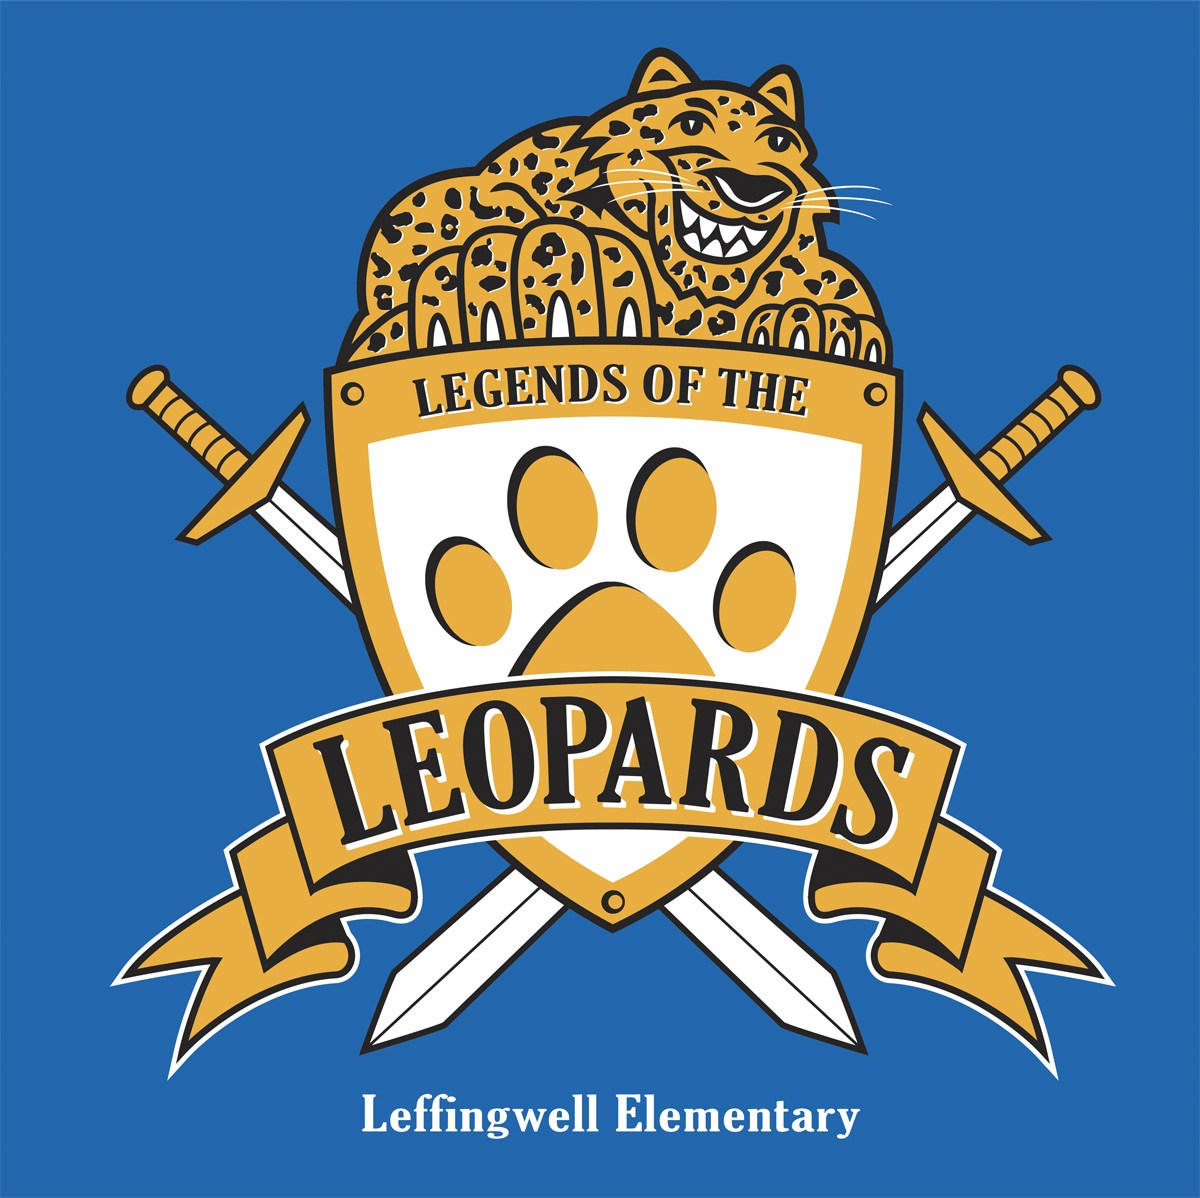 Legends of the Leopards Poster